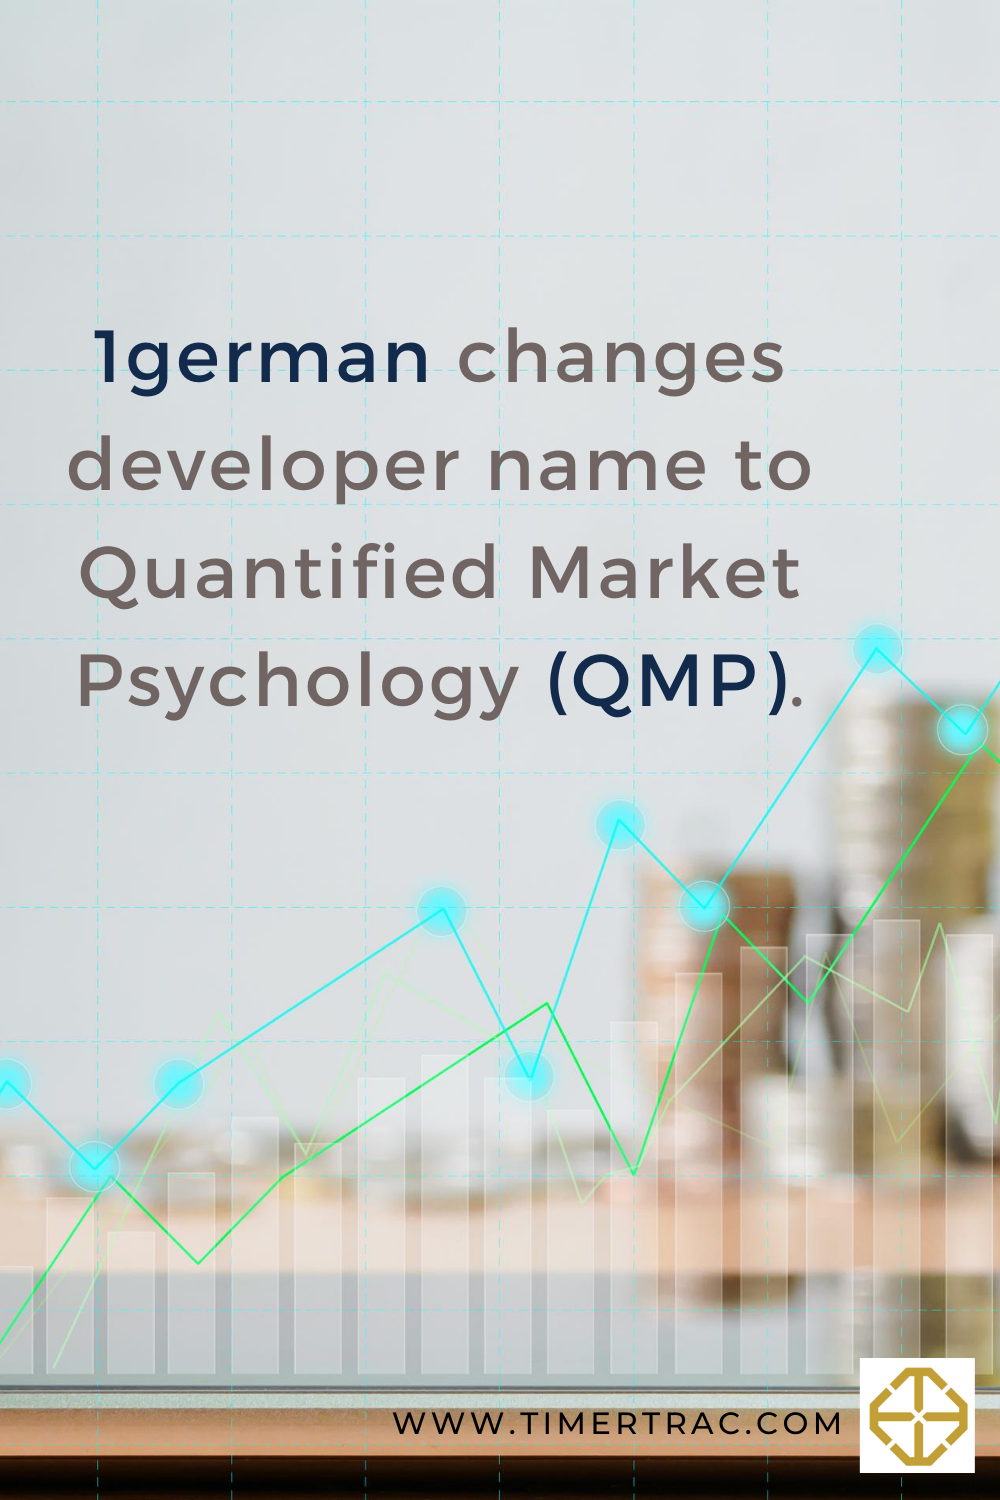 Quantified Market Psychology In 2020 Psychology Marketing Stock Market